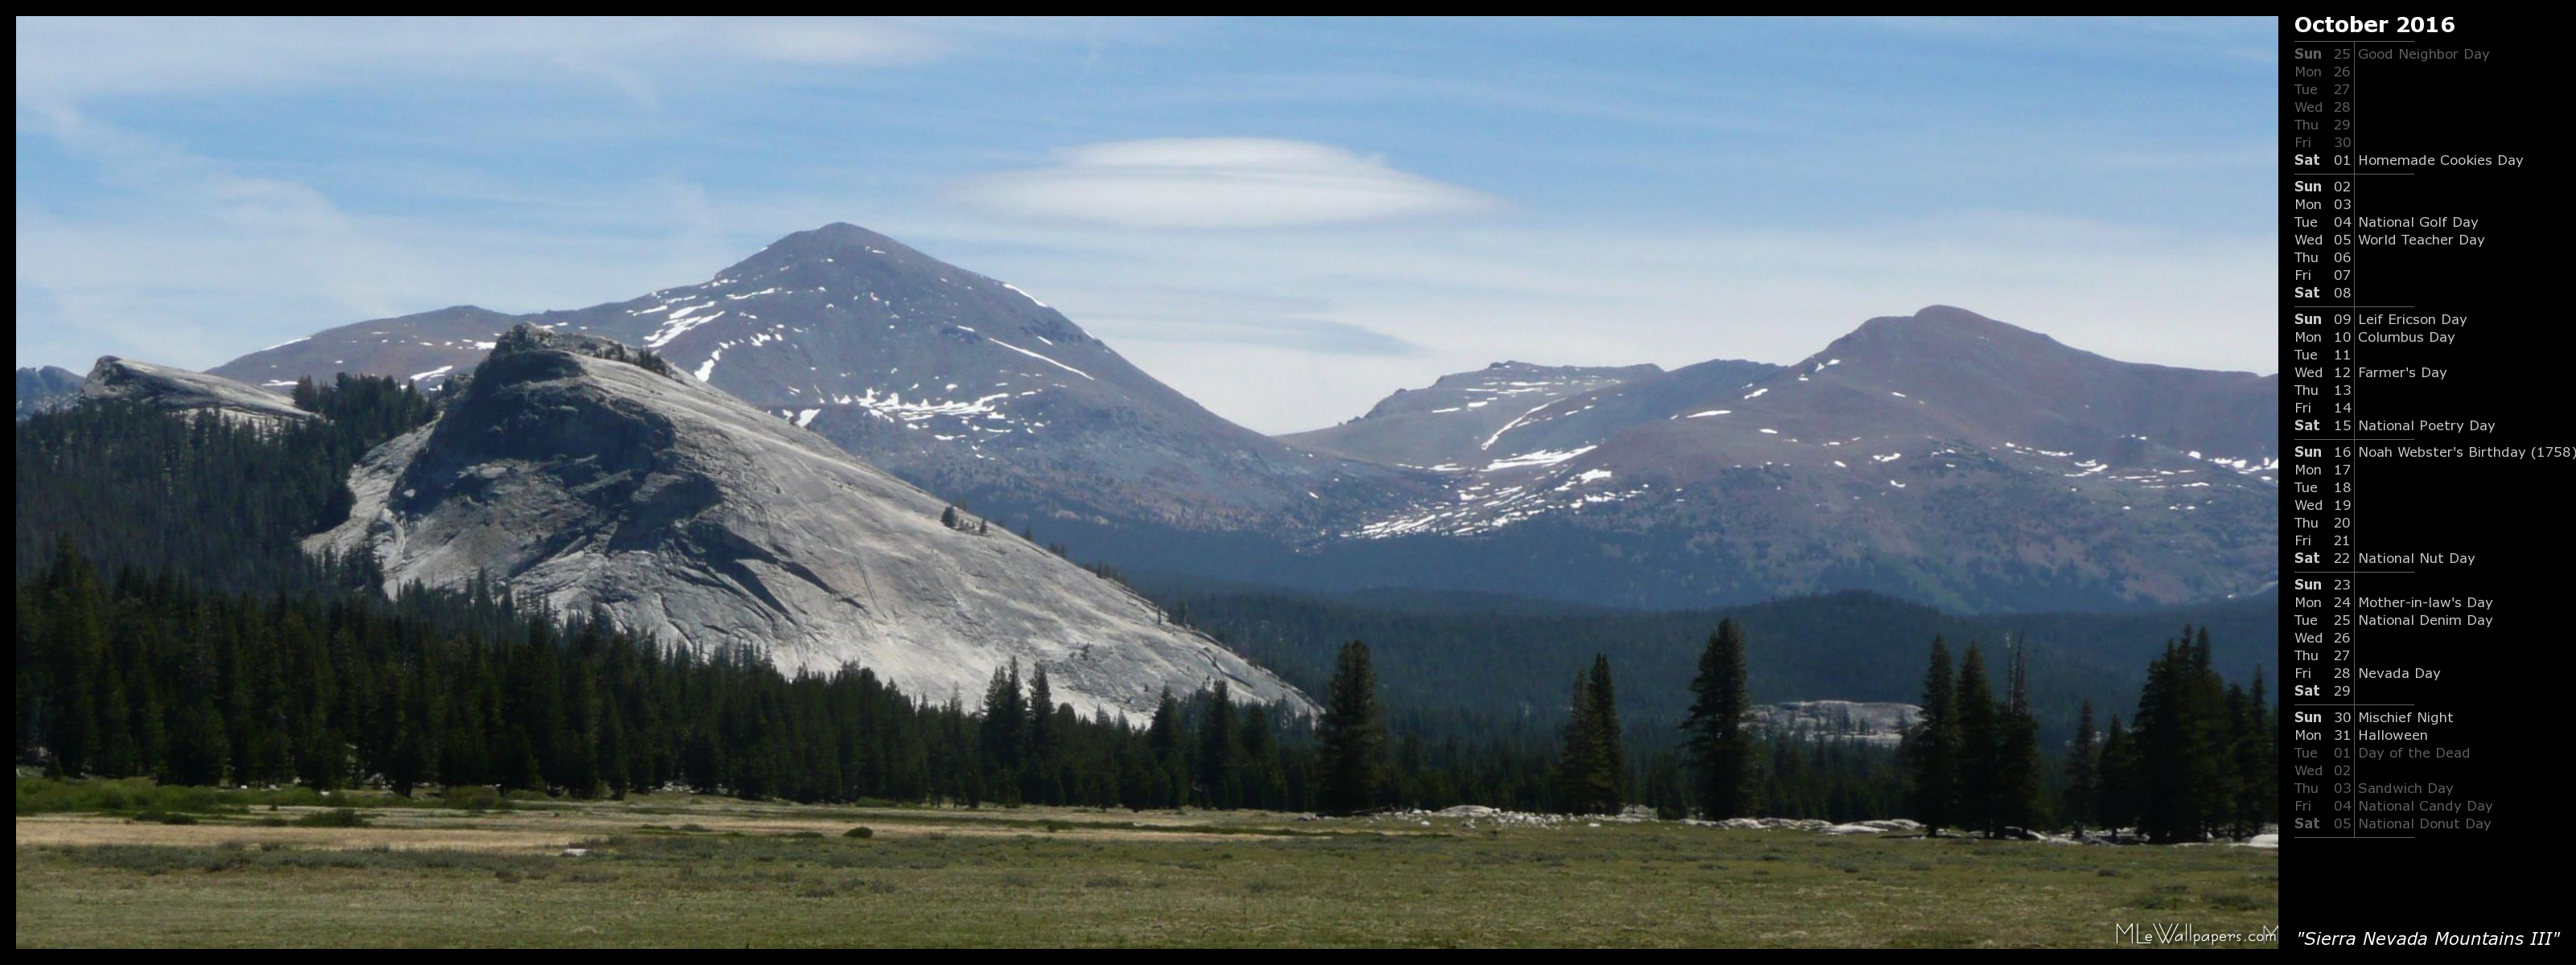 Free Download This Picture Of The Sierra Nevada Mountains